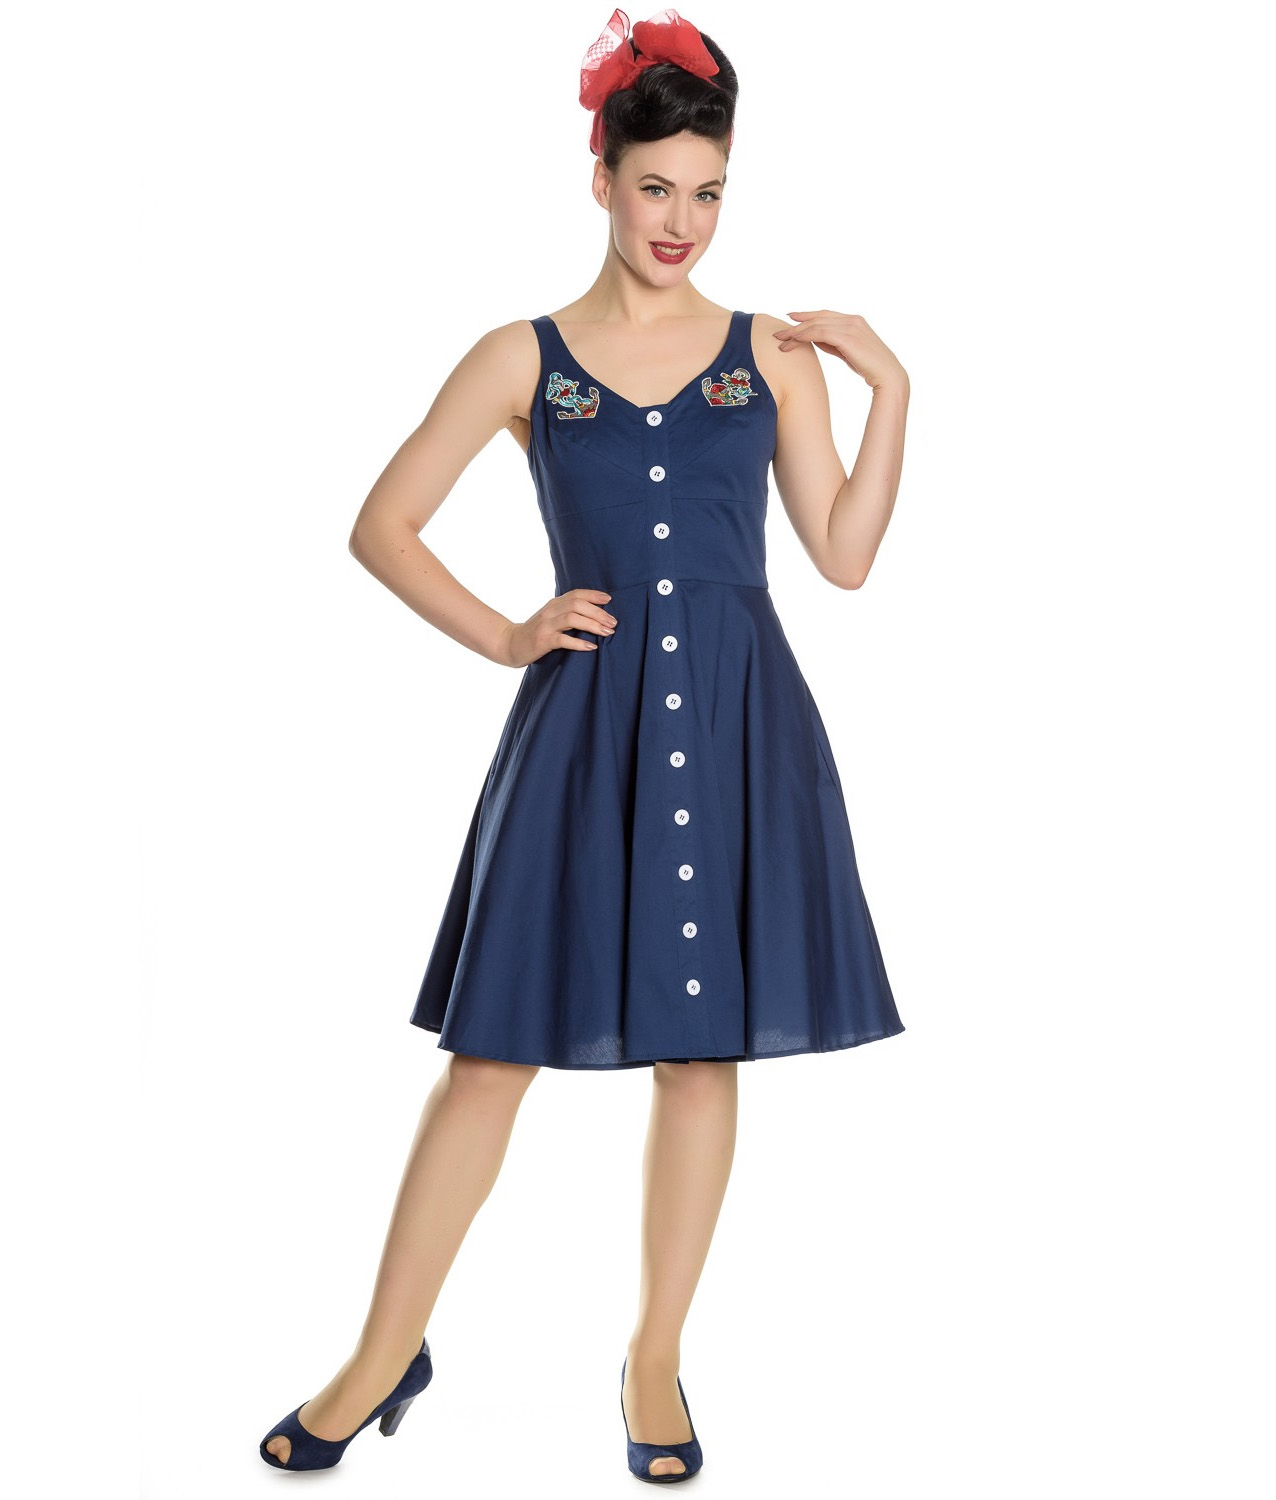 Hell-Bunny-Vintage-50s-Pin-Up-Dress-Navy-Blue-SELA-Nautical-Anchors-All-Sizes thumbnail 27